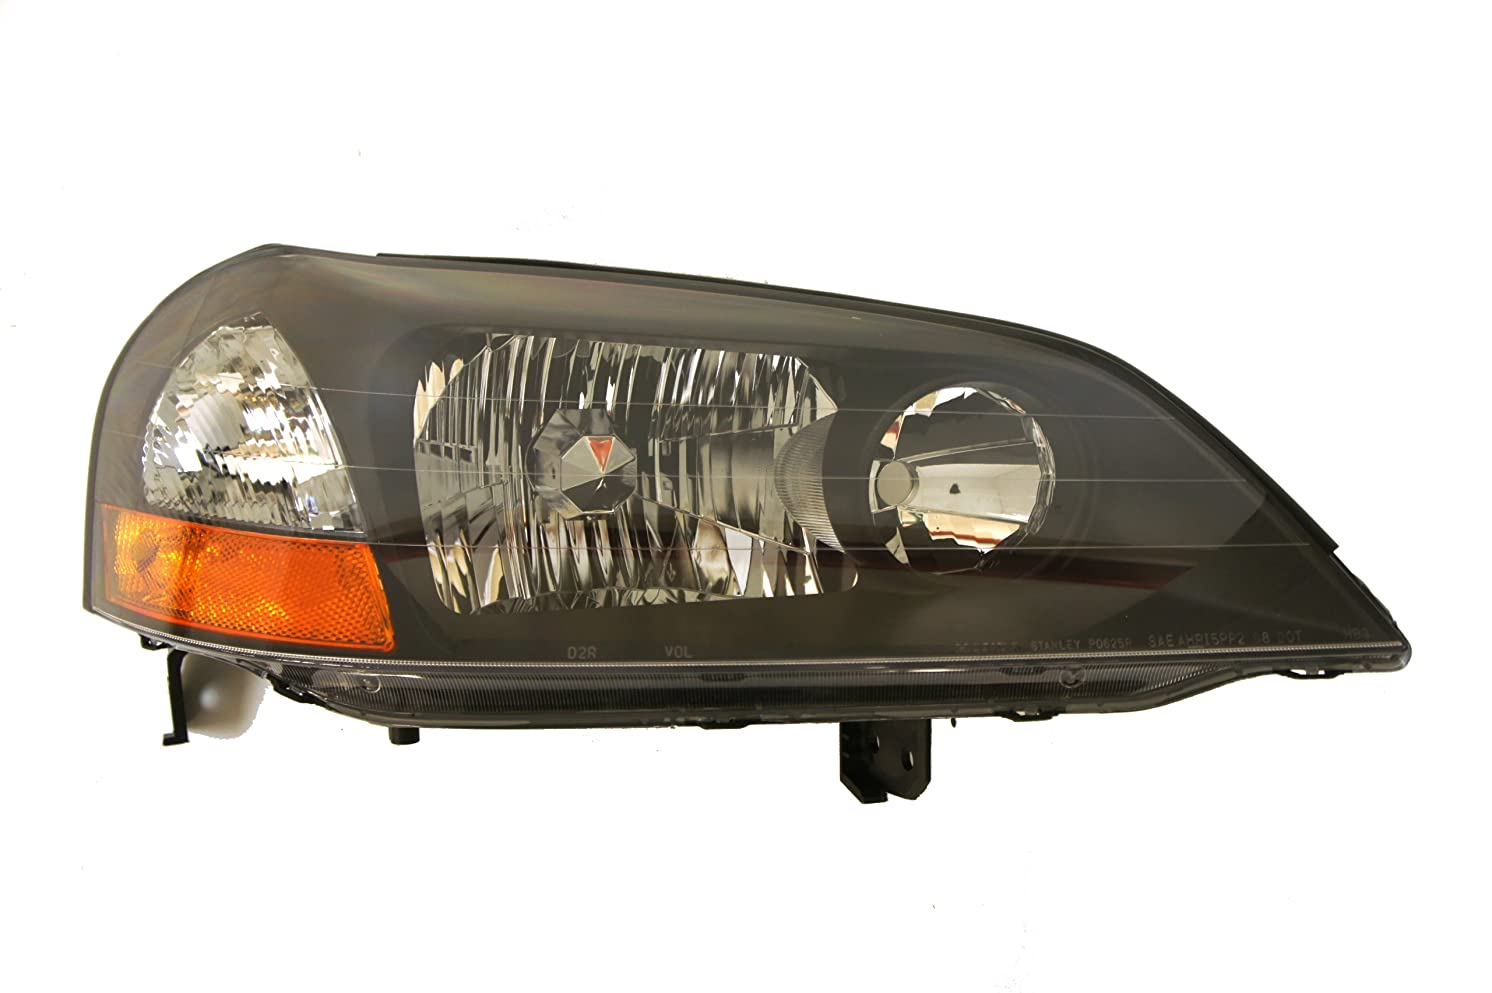 Genuine Acura 3.2CL Passenger Side Headlight Assembly Composite (Partslink Number AC2503116) - 33101-S3M-A12 kmwxfkyqtz9178